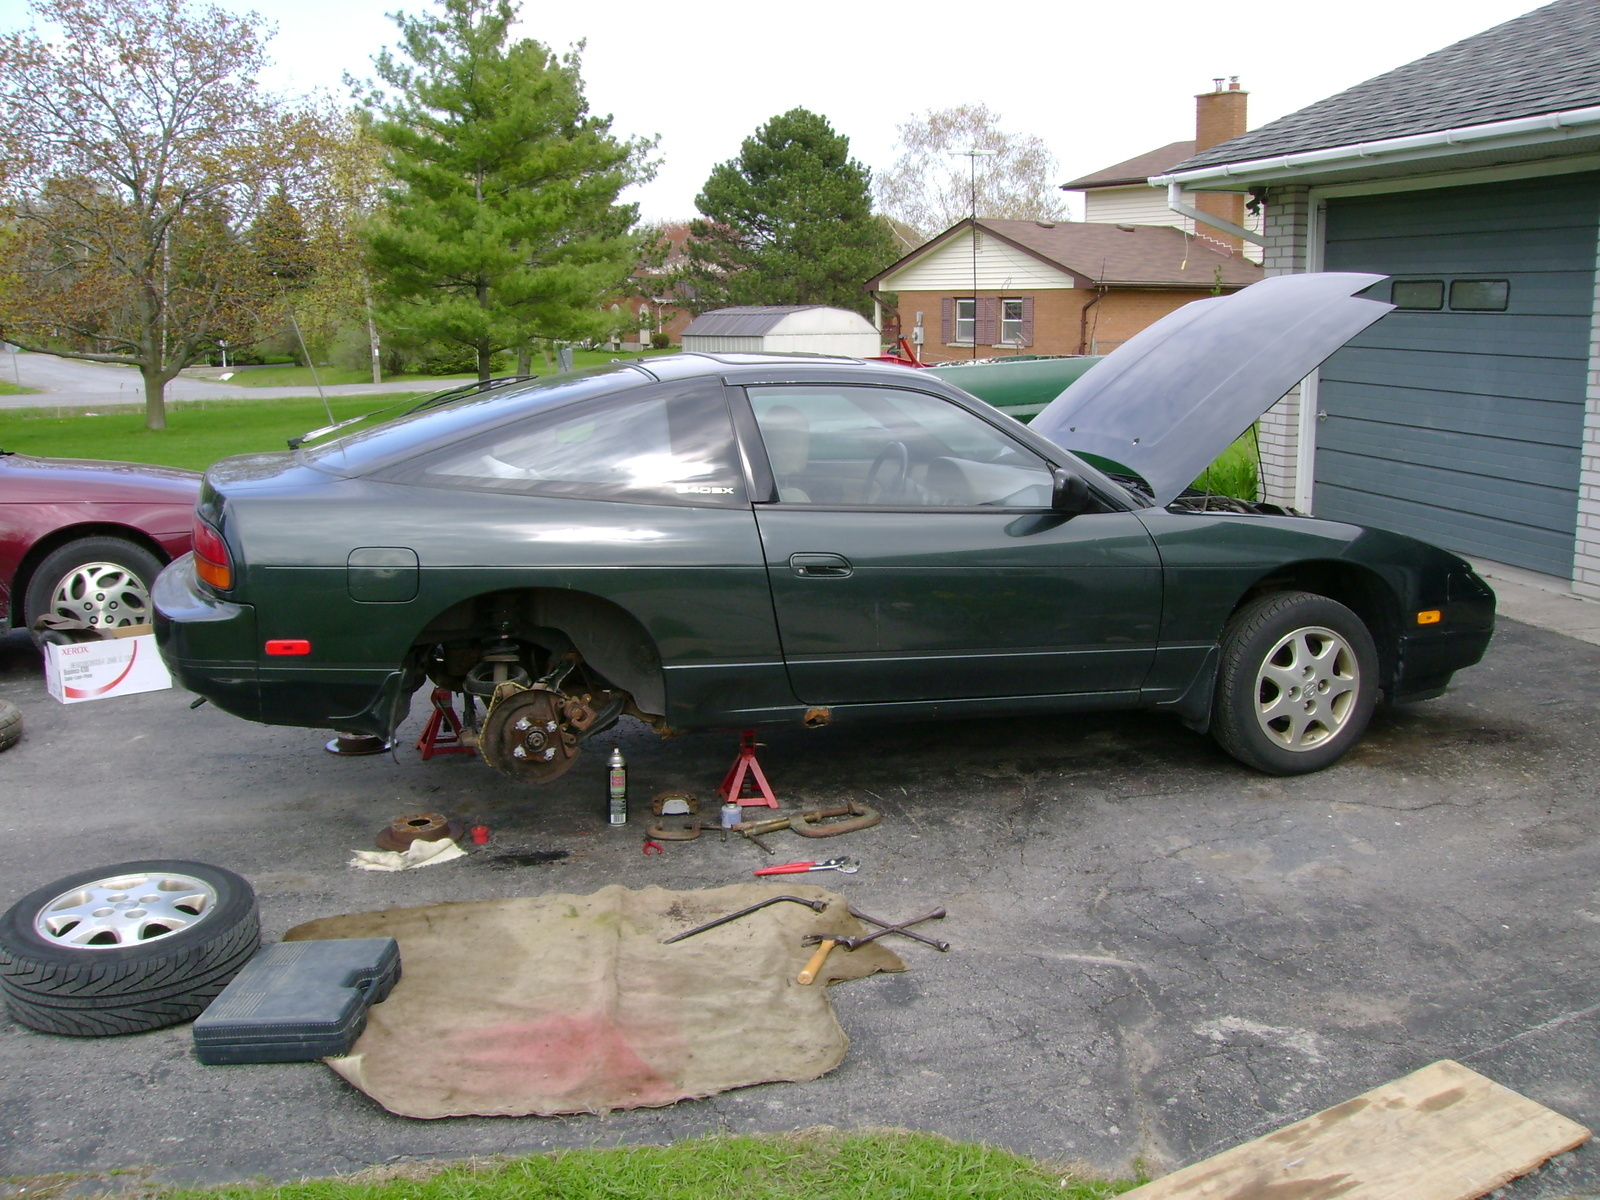 Nissan 240SX Questions - How do you swap a manual transmission into a nissan  240sx that has an ... - CarGurus